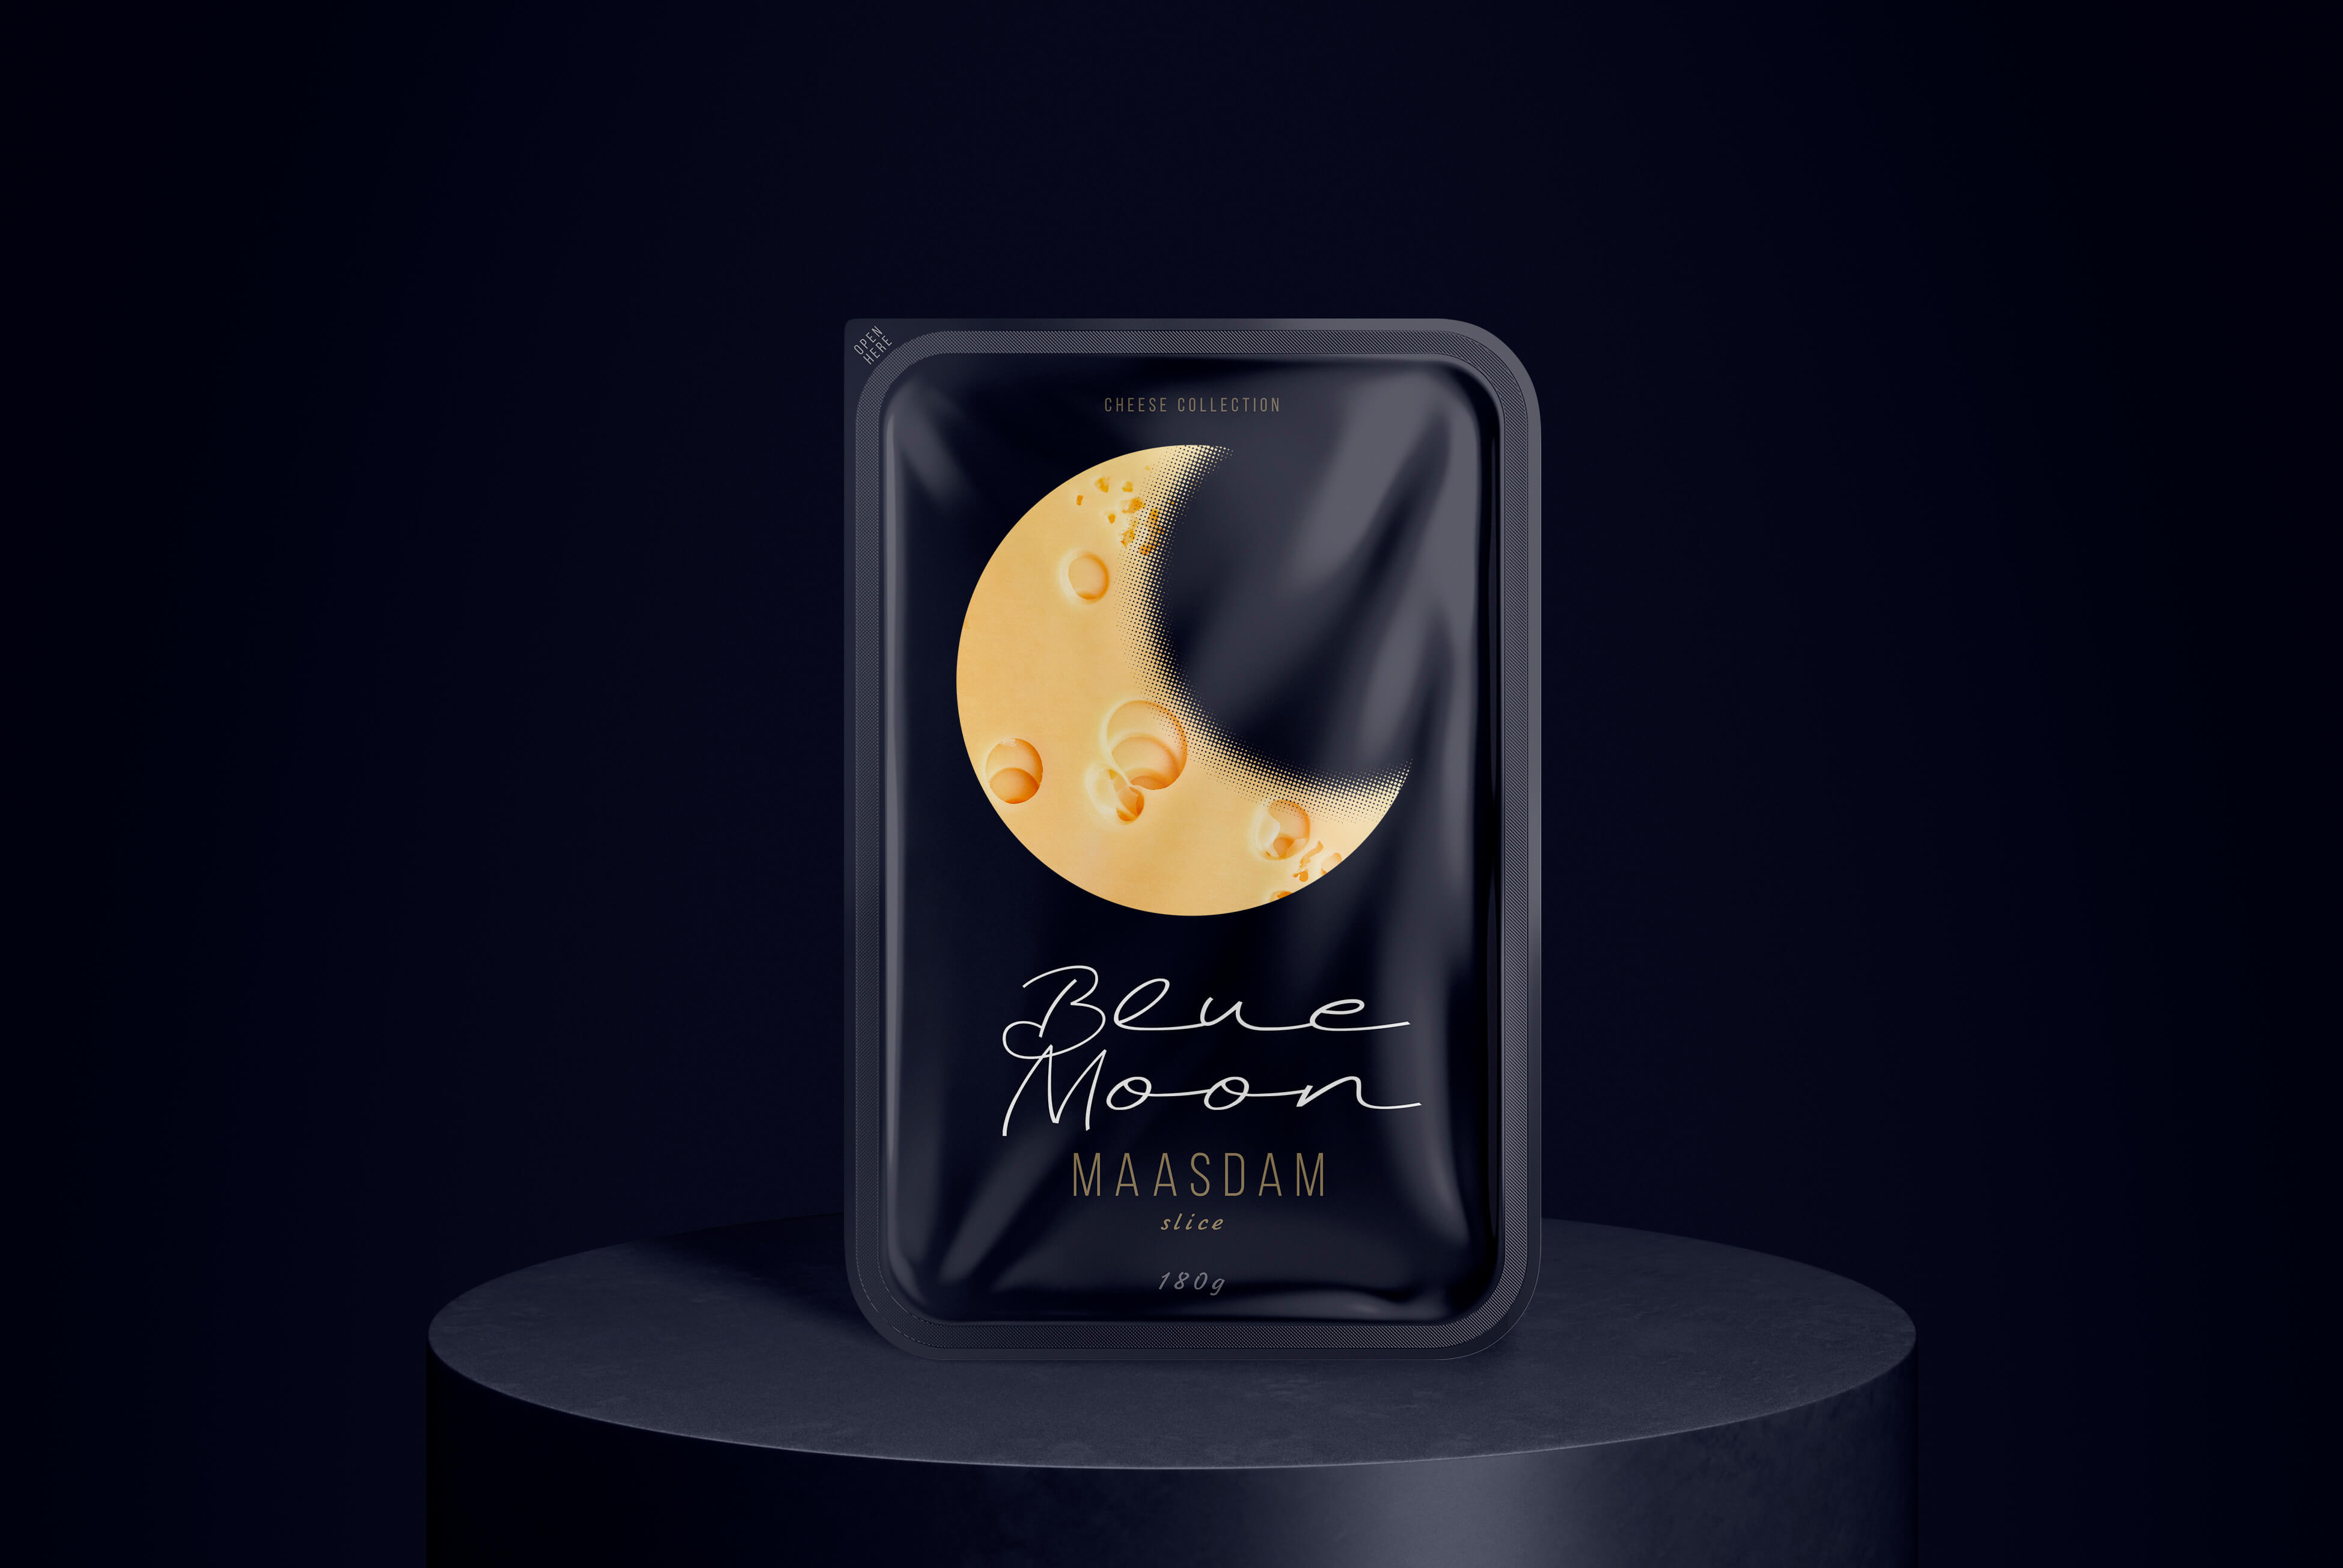 Light Blue Moon Cheeses Are Ideal for a Quick Evening Snack